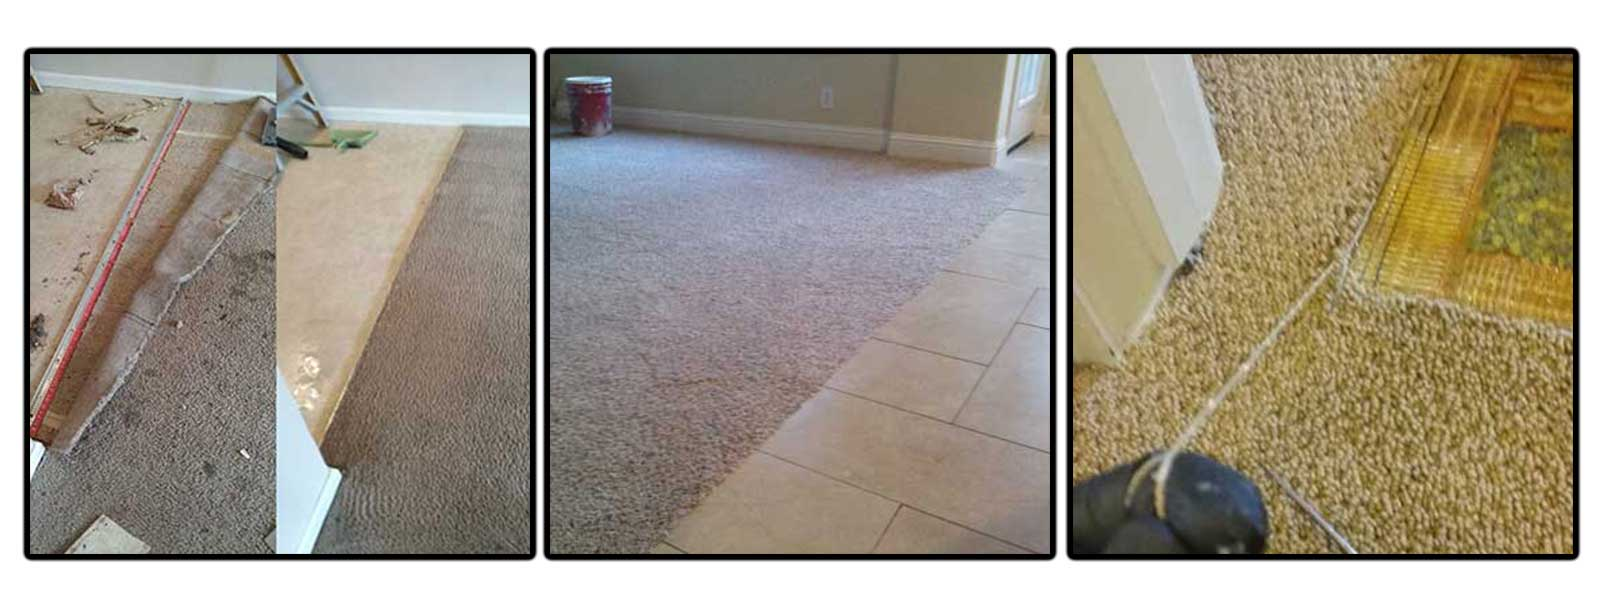 Carpet repair carpet stretching pet damage repairs gold coast carpet repair transition damage tile hardwood installation services dailygadgetfo Image collections